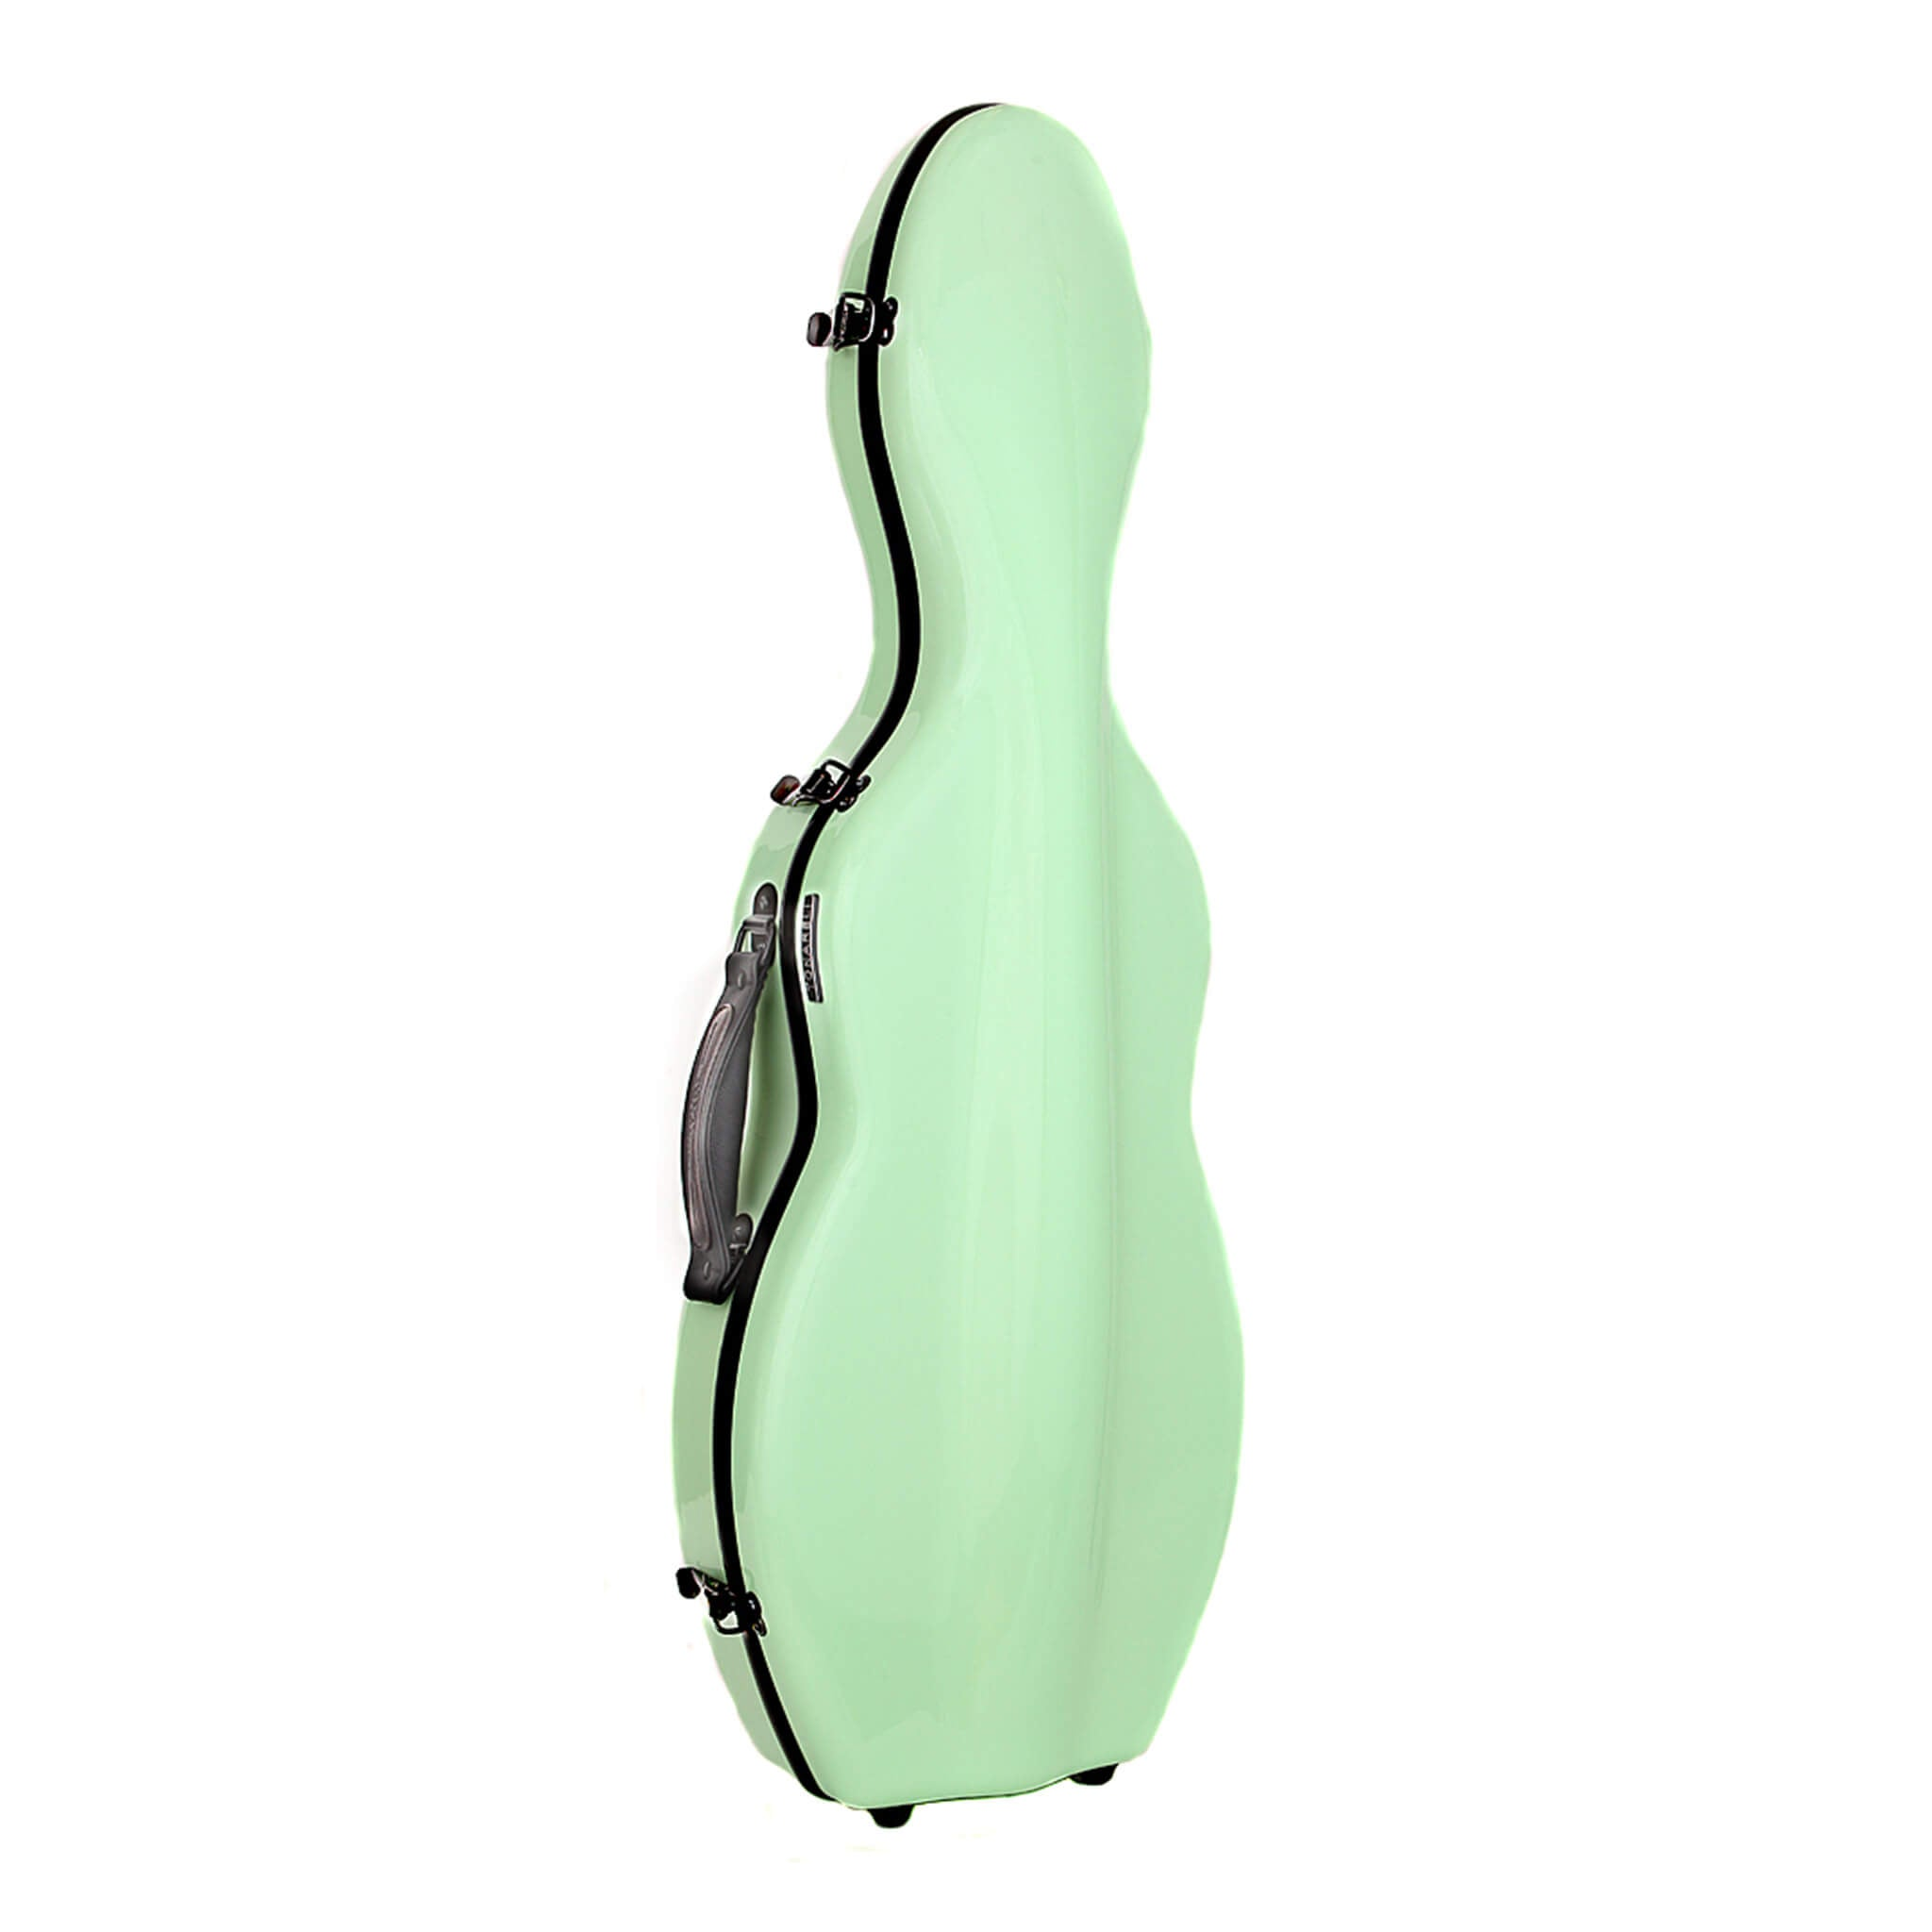 Tonareli Cello Shaped Fiberglass Violin Case